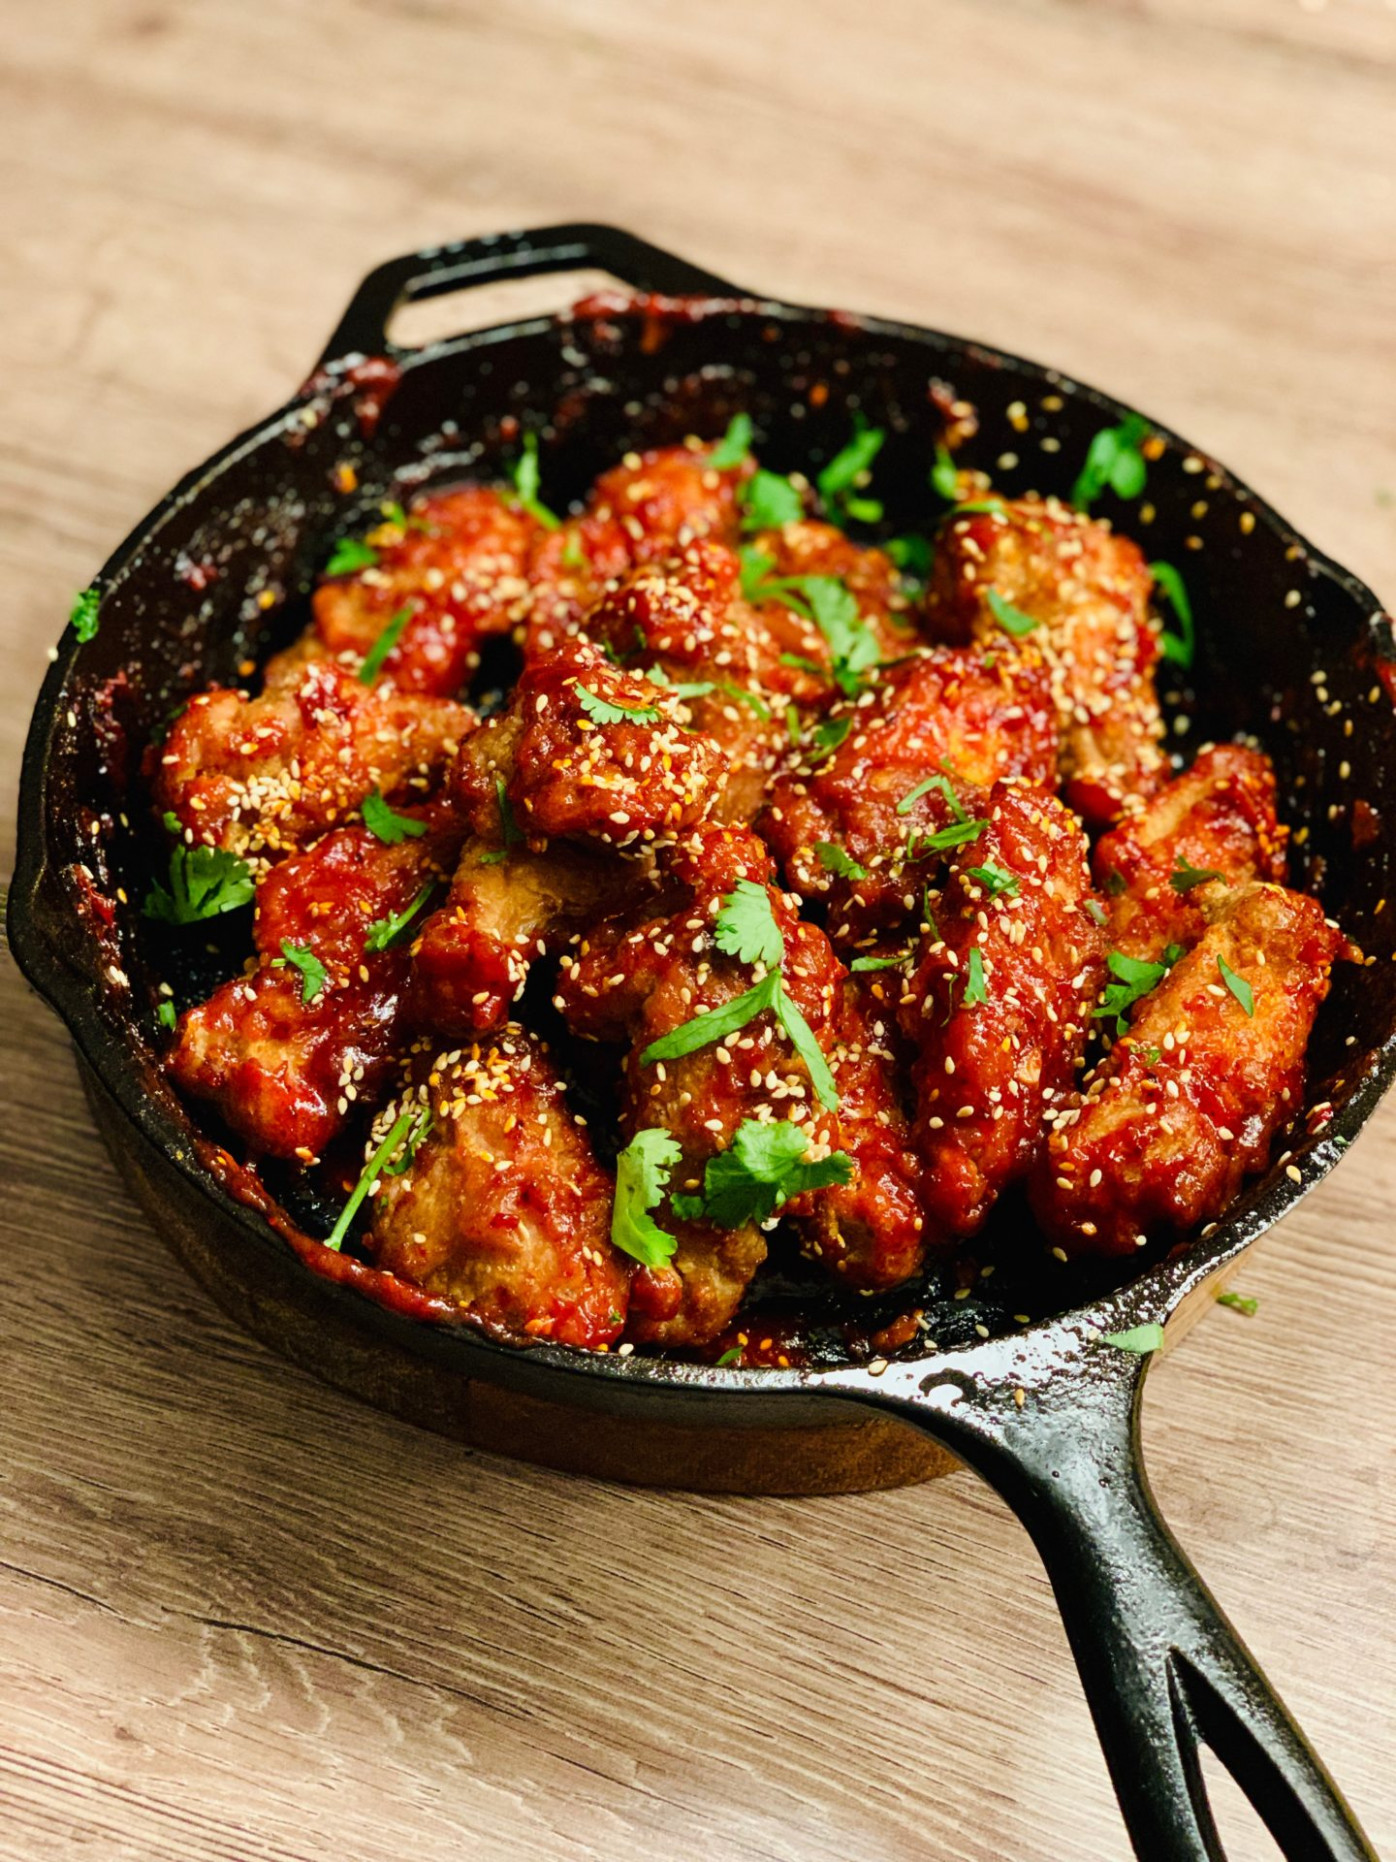 Spicy Korean Fried Chicken - Double Fry